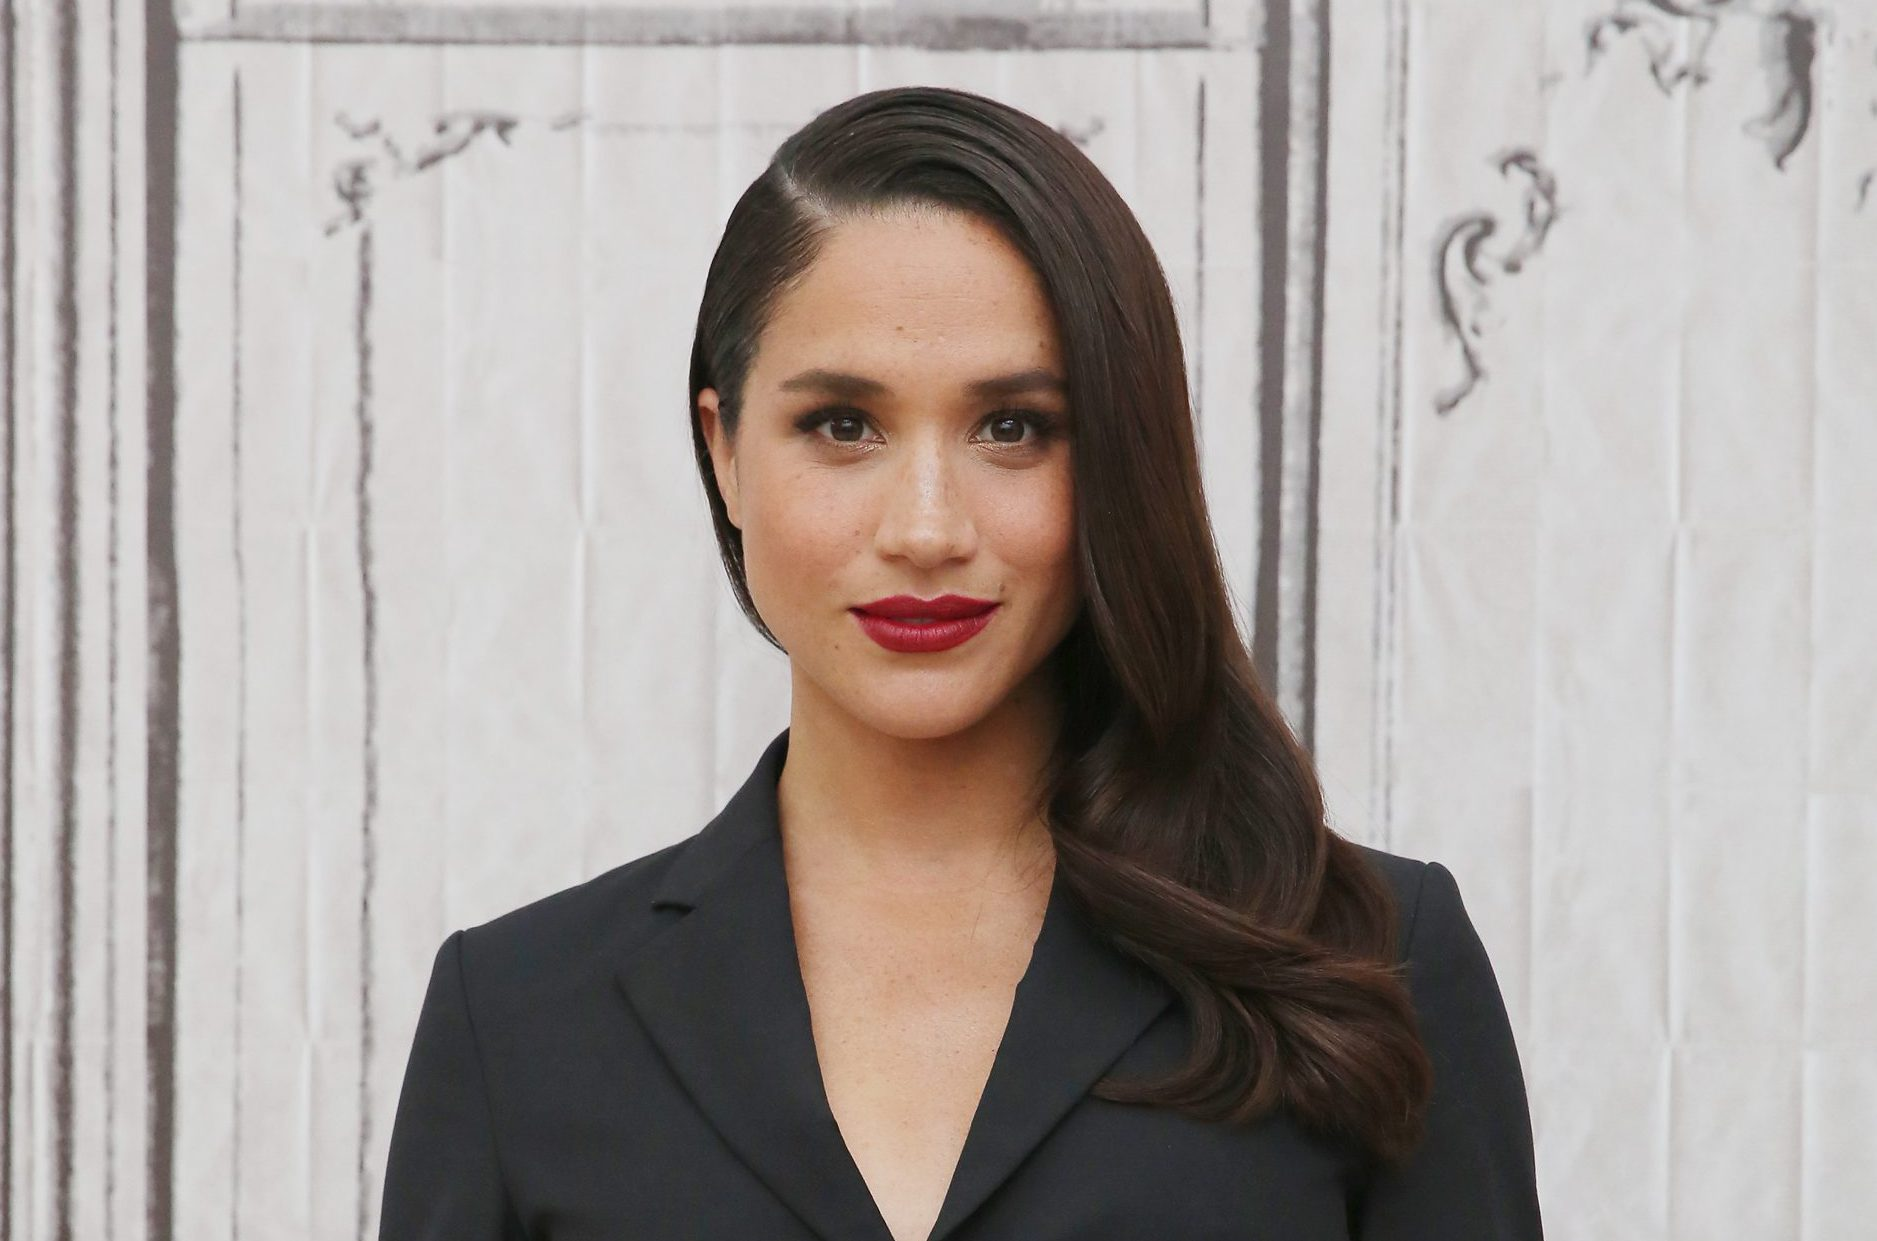 Meghan Markle's latest Instagram post sparks crude comments about 'Royal English Bananas'